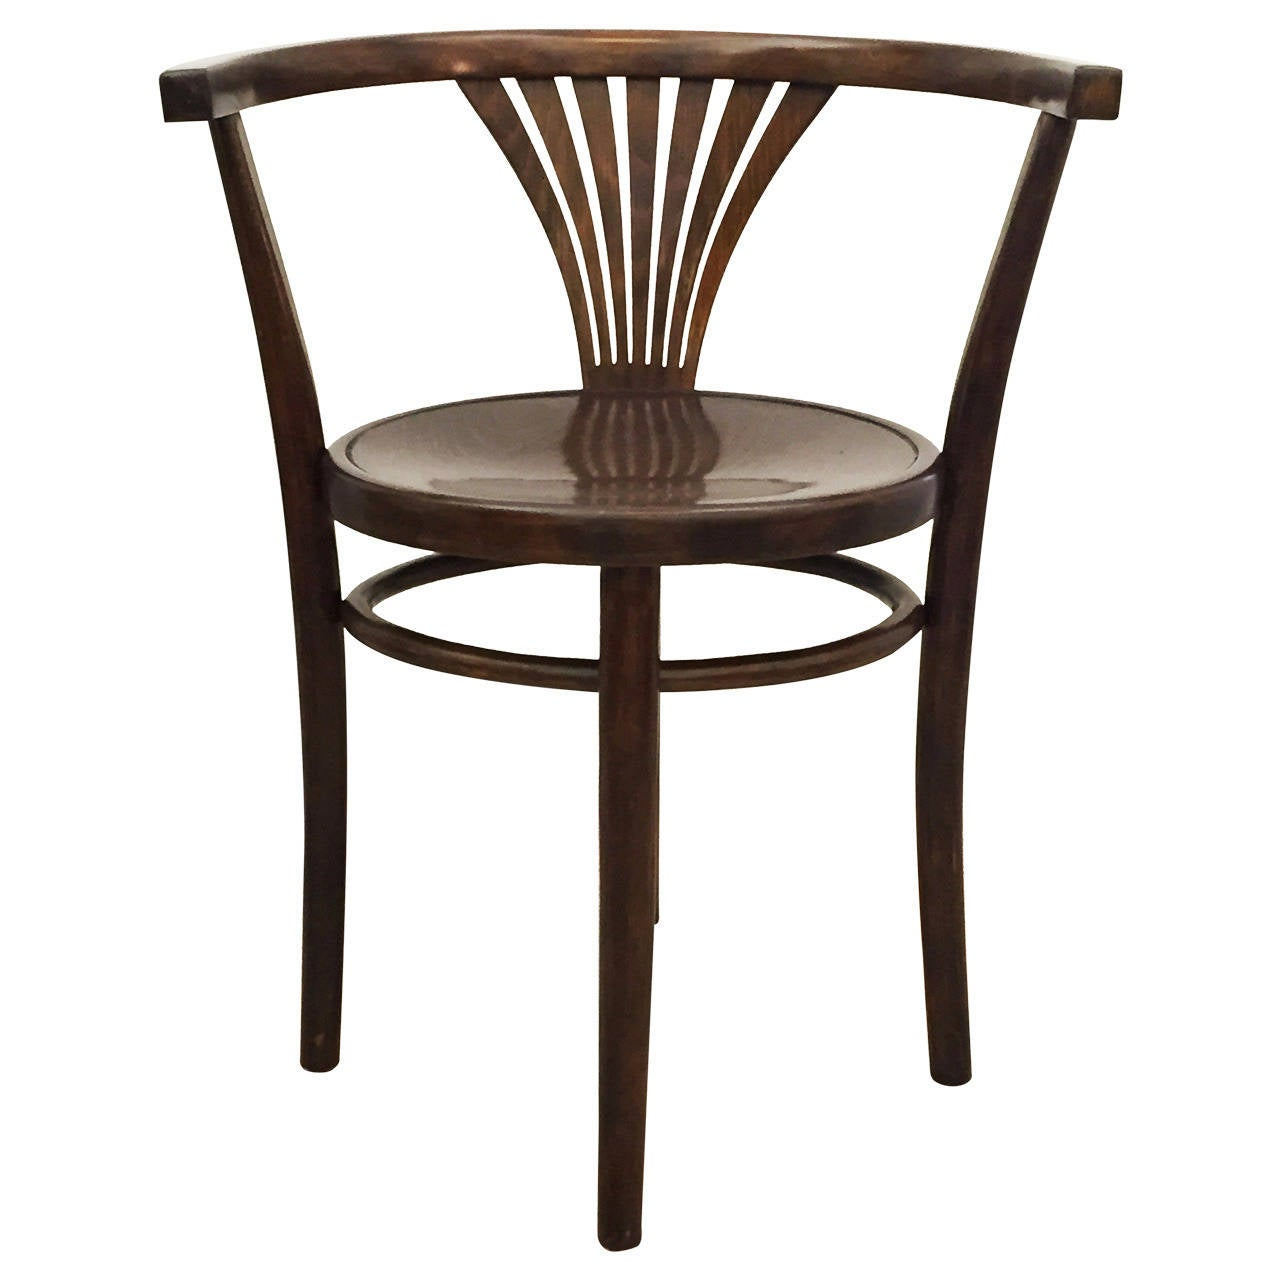 Thonet Armchair Catalog Number 28 For Sale